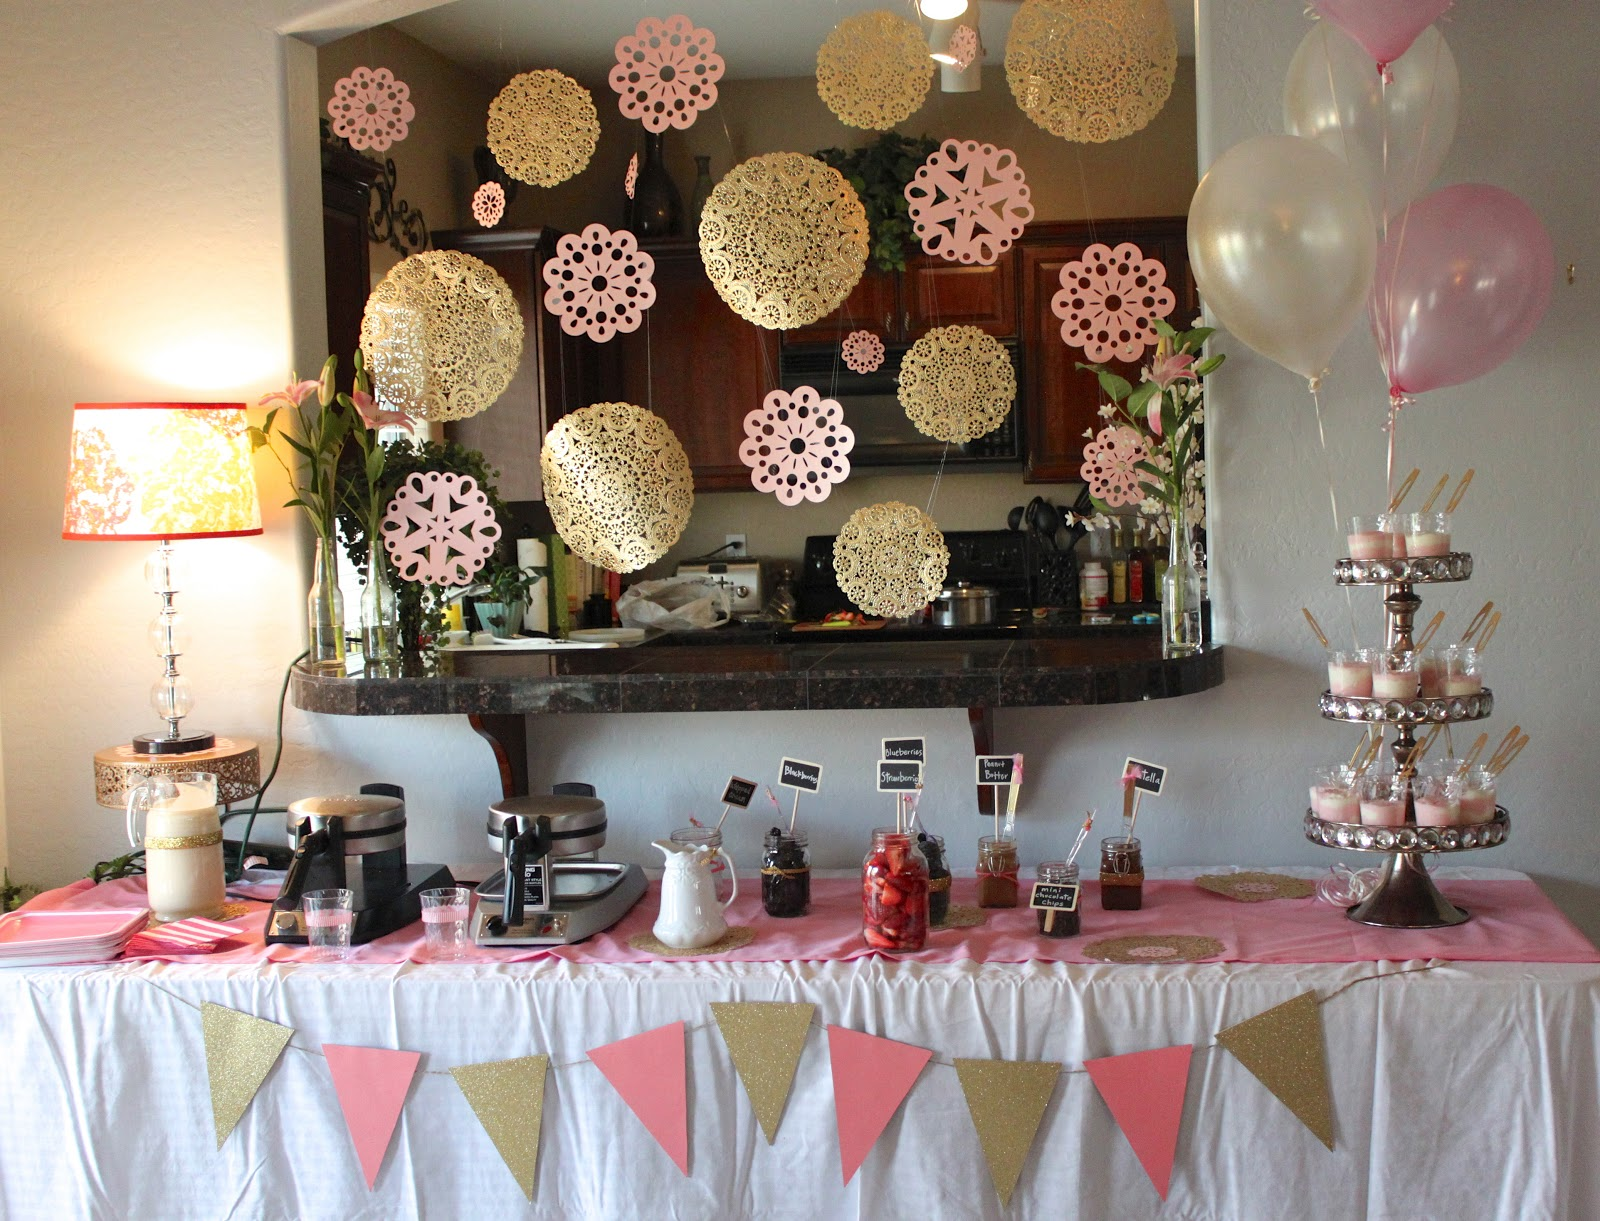 ... Is Expecting A Baby Girl Any Day Now. Lindsay, Lori And I Threw Her An  Ultra Feminine Pink And Gold Themed Waffle Bar Shower. It Was So Much Fun!